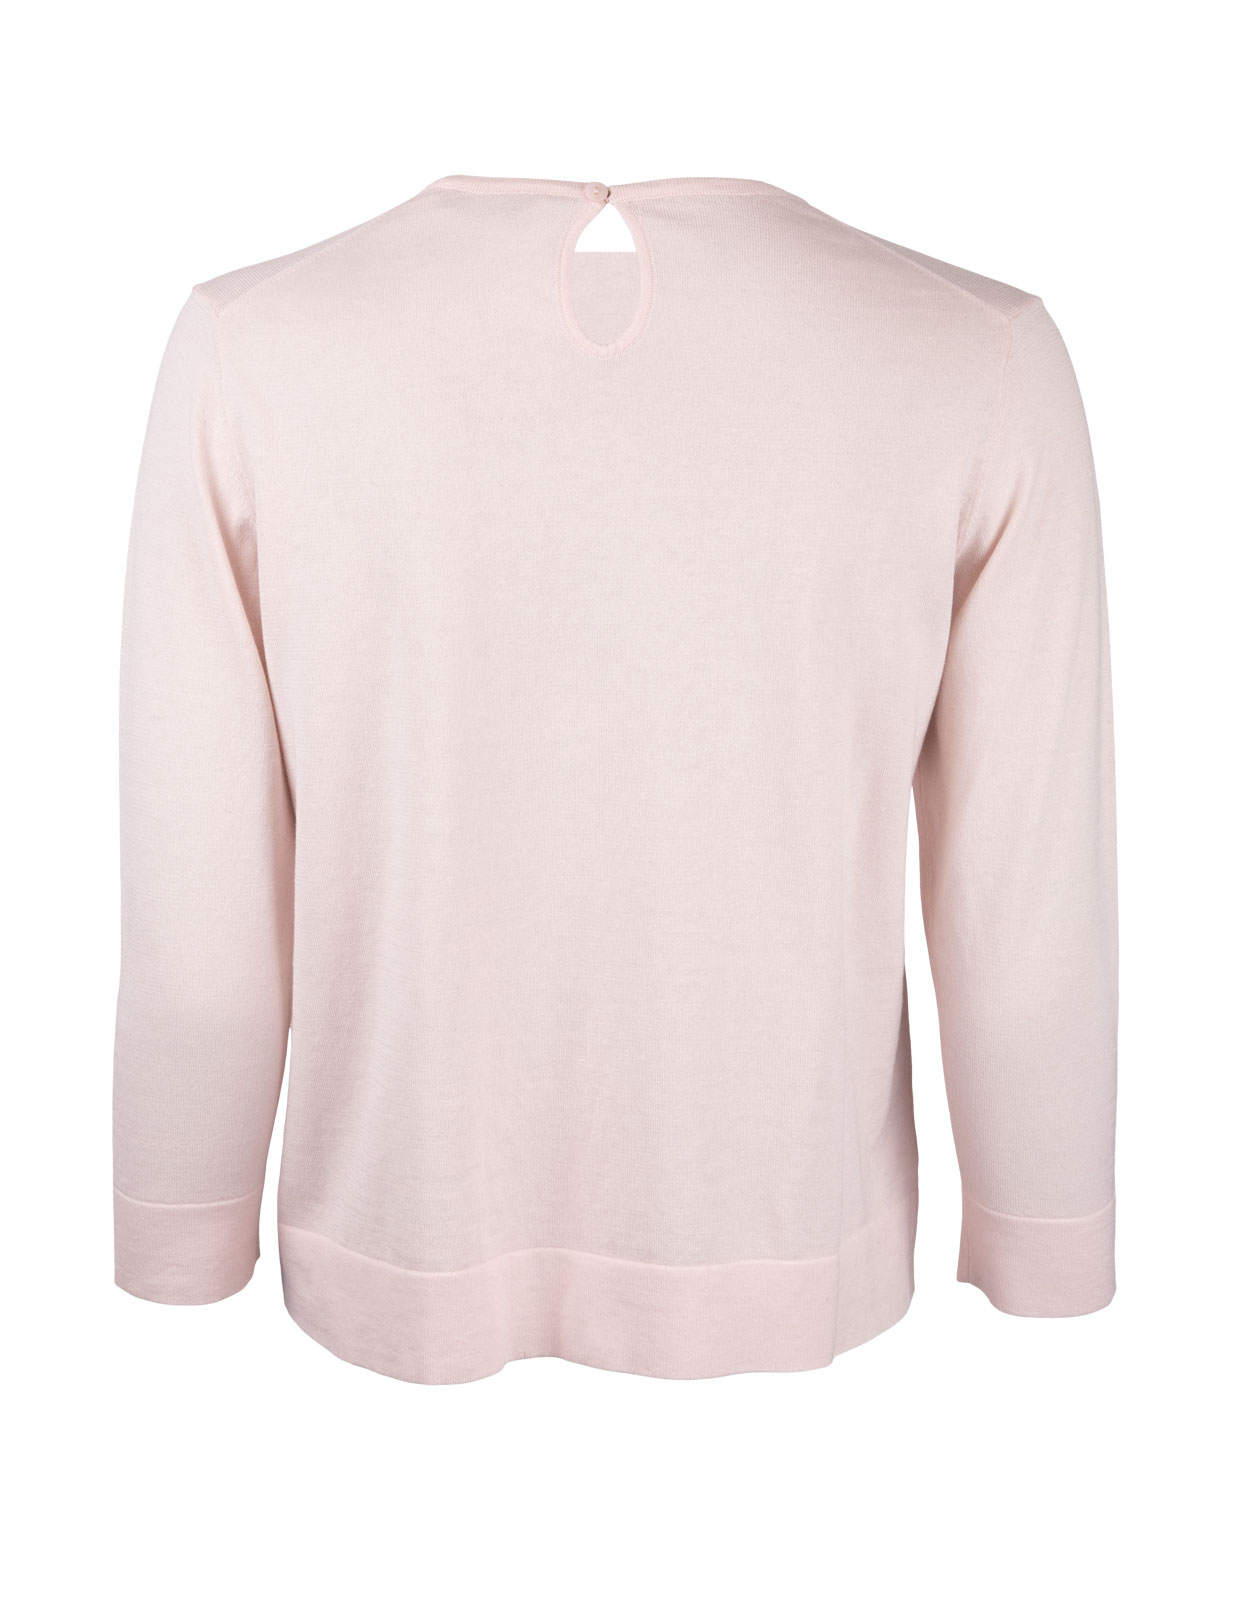 Sweater Sara Peach Blush